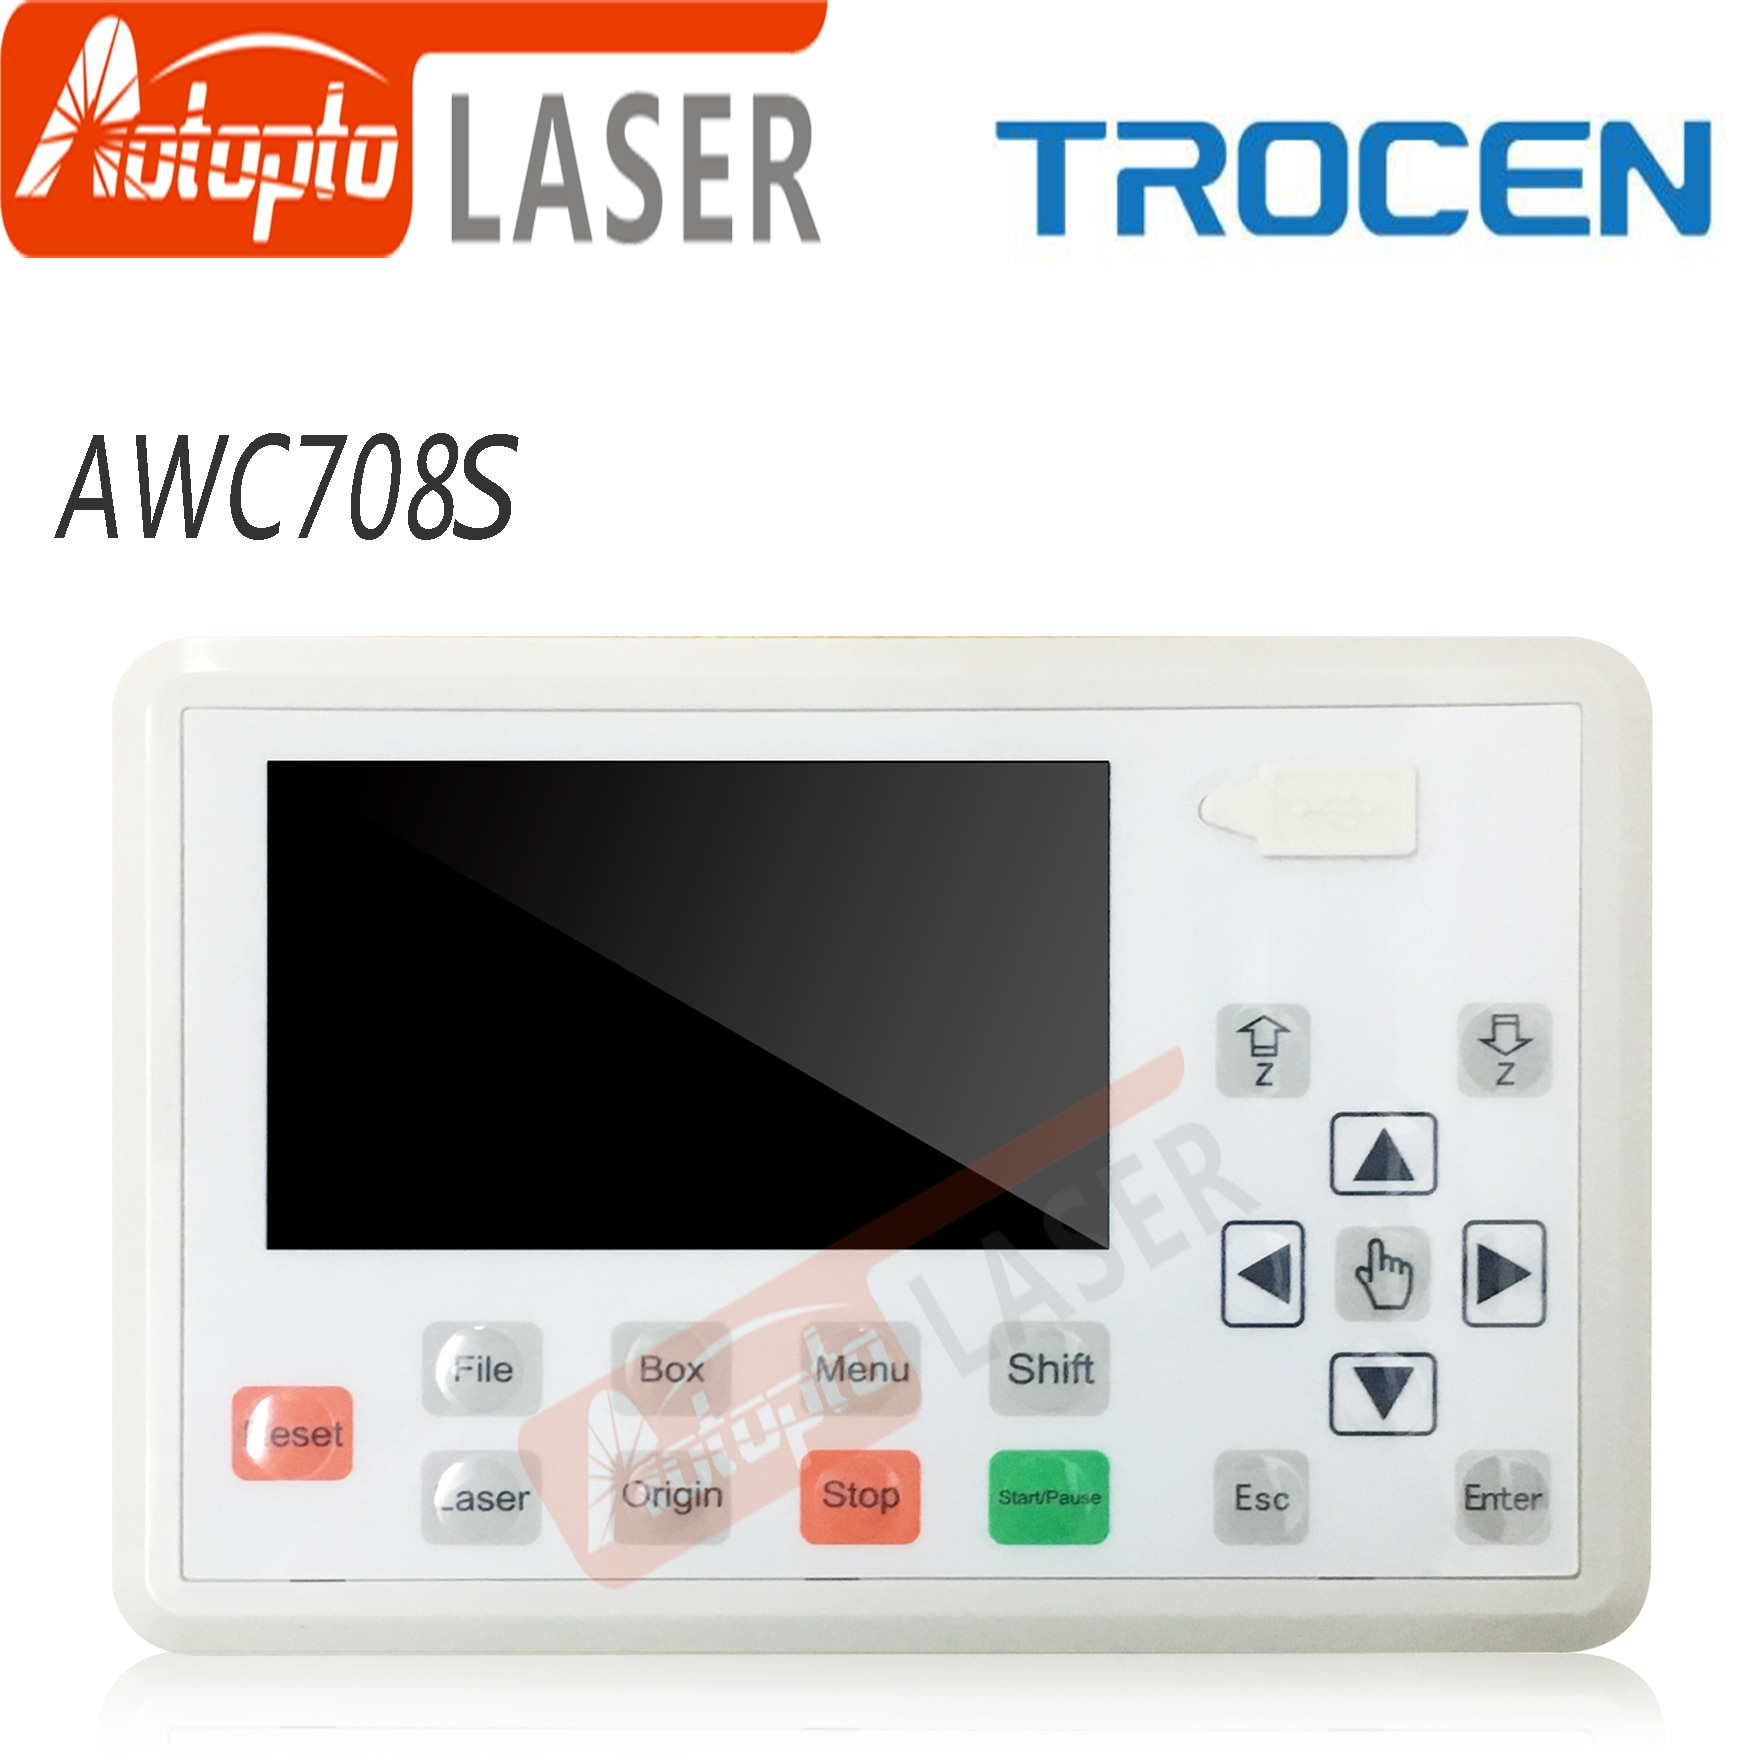 Trocen AWC708S Co2 Laser Controller System for Laser Engraving and Cutting Machine Replace AWC708C Lite Ruida Leetro